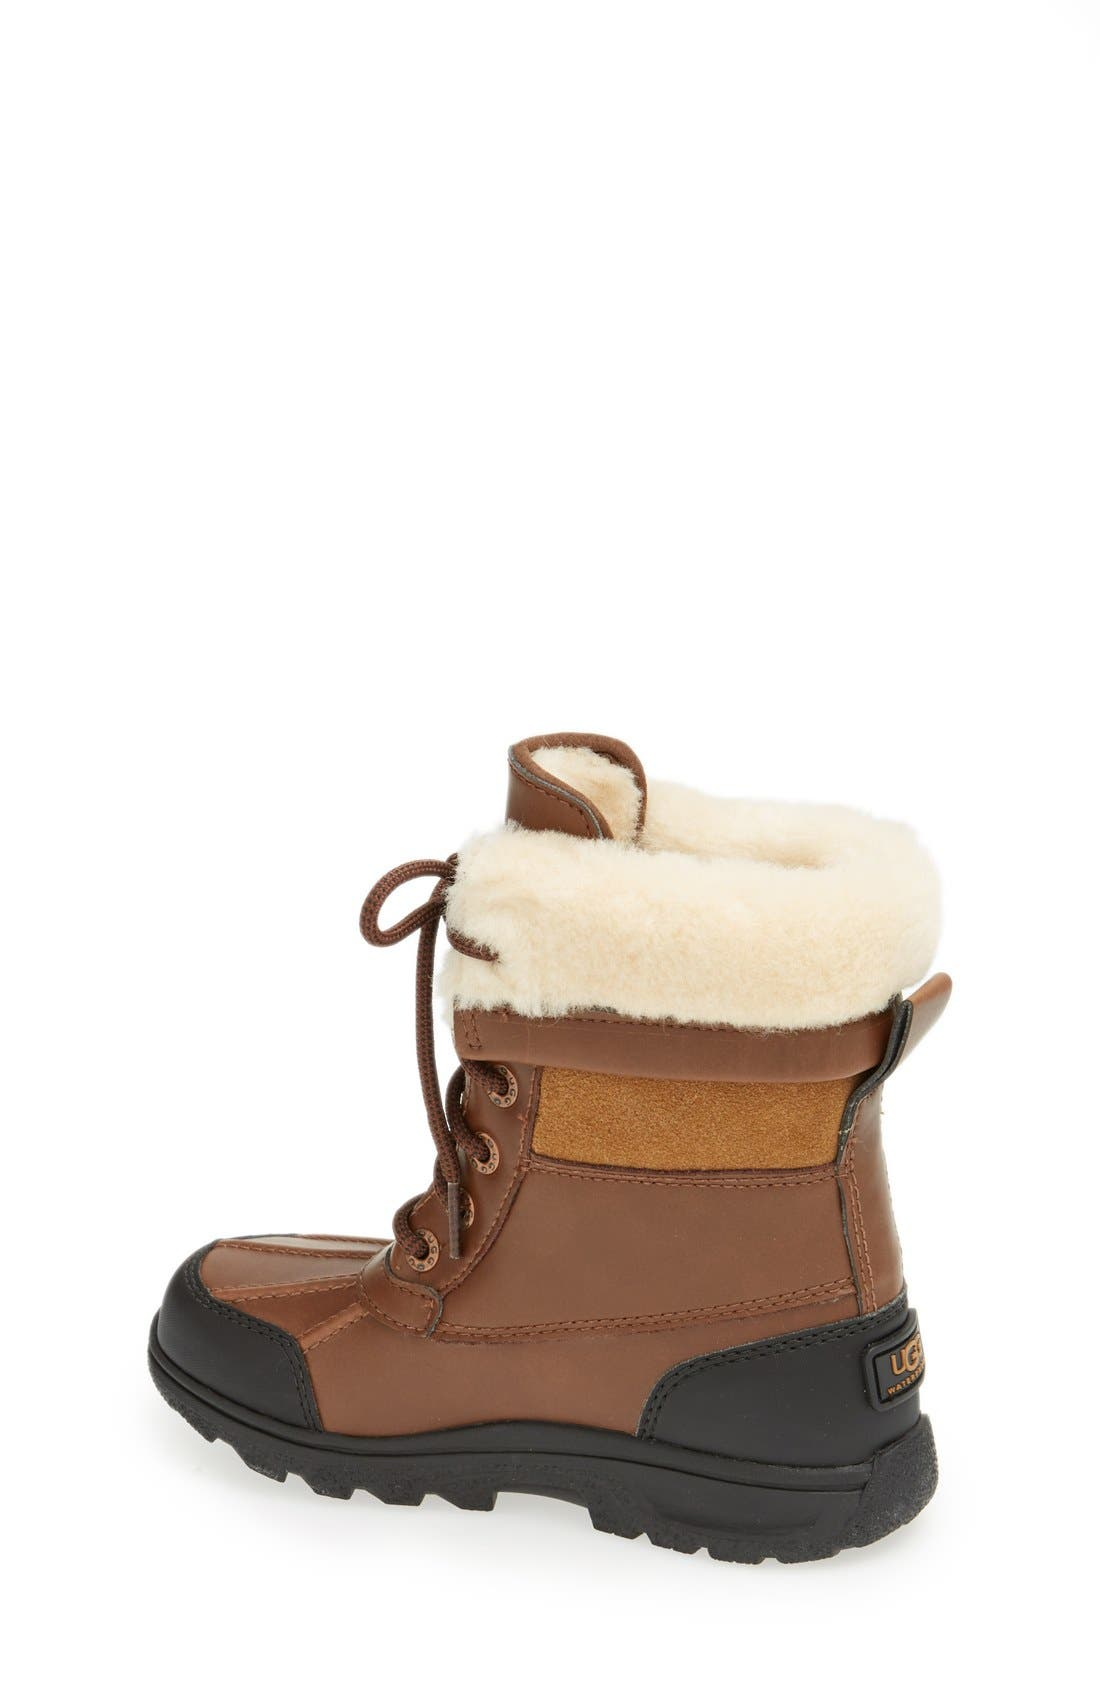 'Butte II' Waterproof Leather Boot,                             Alternate thumbnail 2, color,                             Worchester